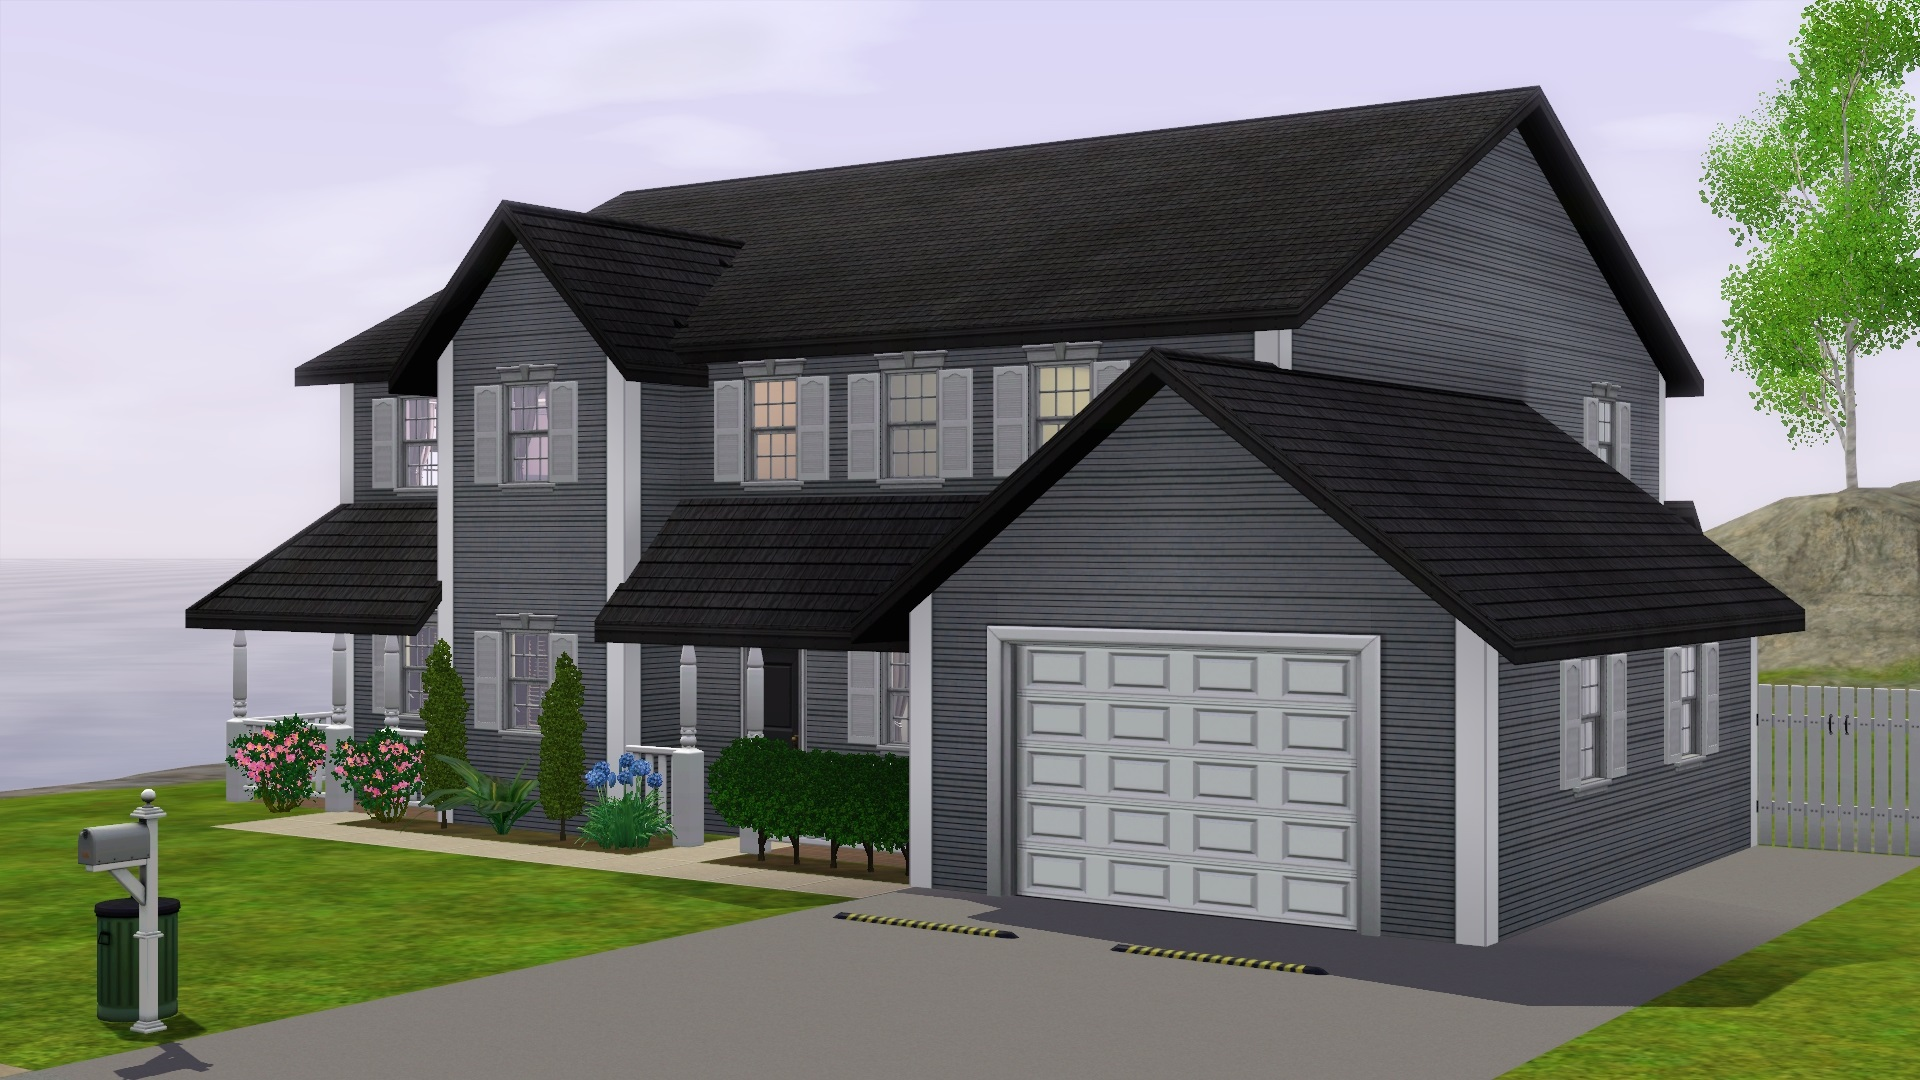 Fourth Upload This Time Around A Neo Colonial Suburban House These Are Stereotypically Found In North Eastern United States But Variations Exist All Over